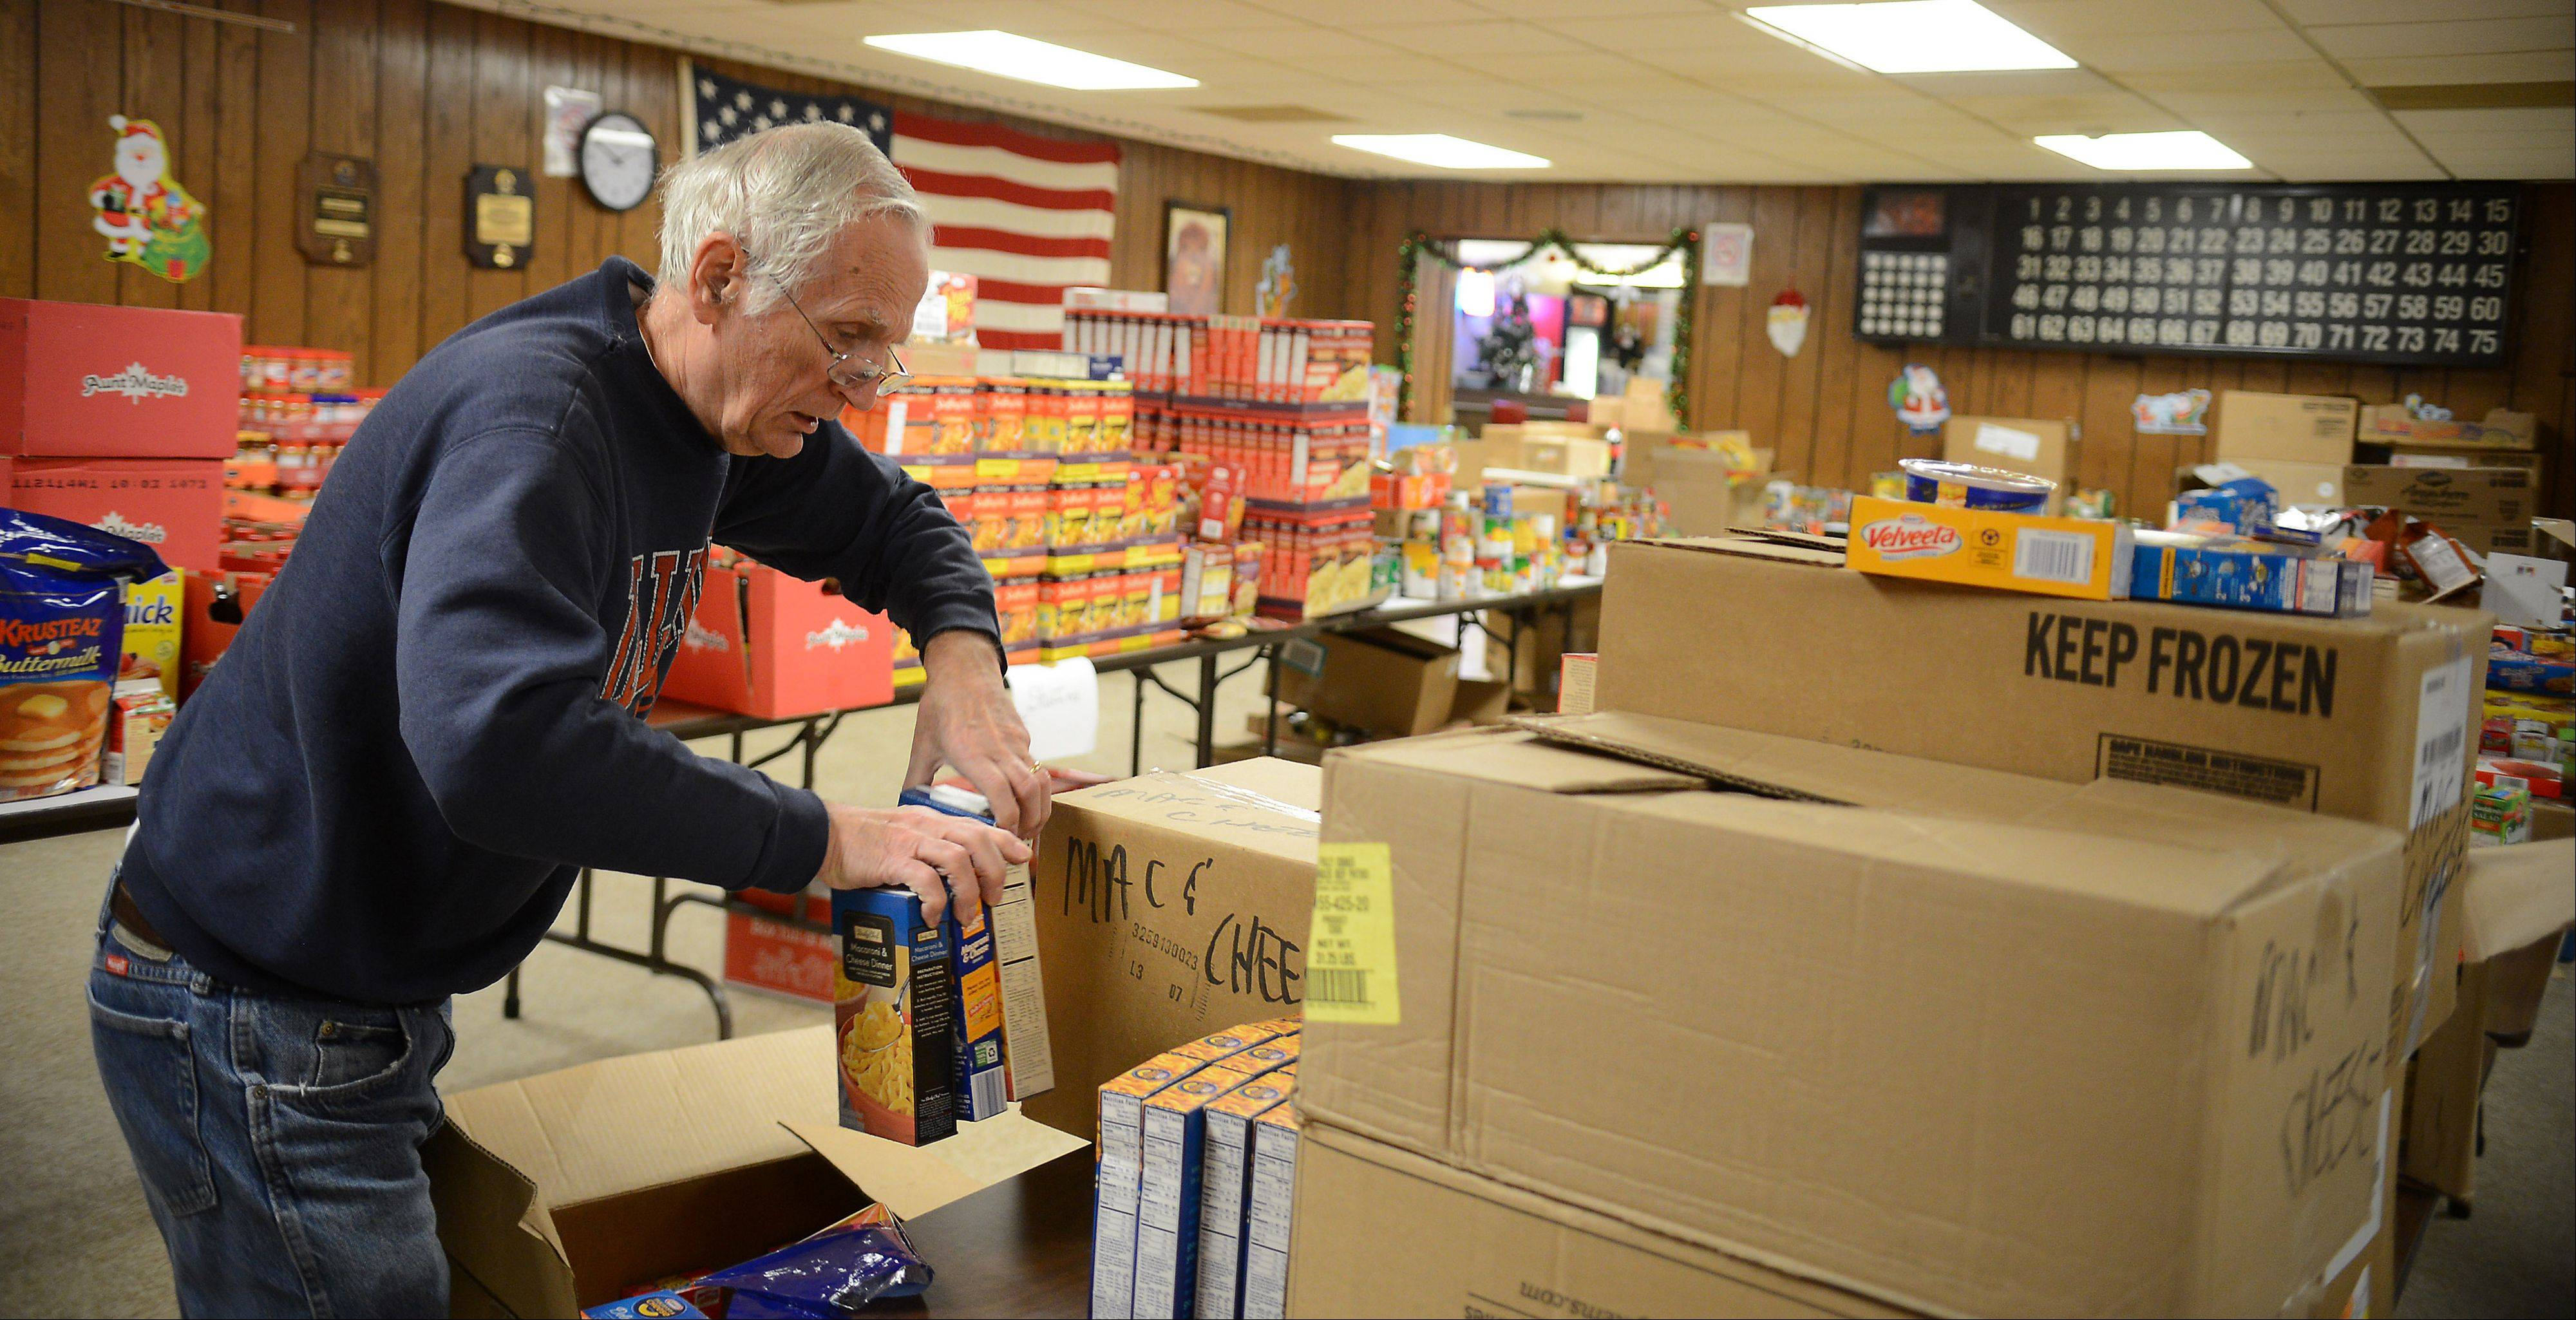 Allan Shelton of the South Elgin Lions Club unpacks boxes of donations and sorts food Tuesday that will be distributed to around 200 needy families in the area this week. They also have coats and toys for those in need.